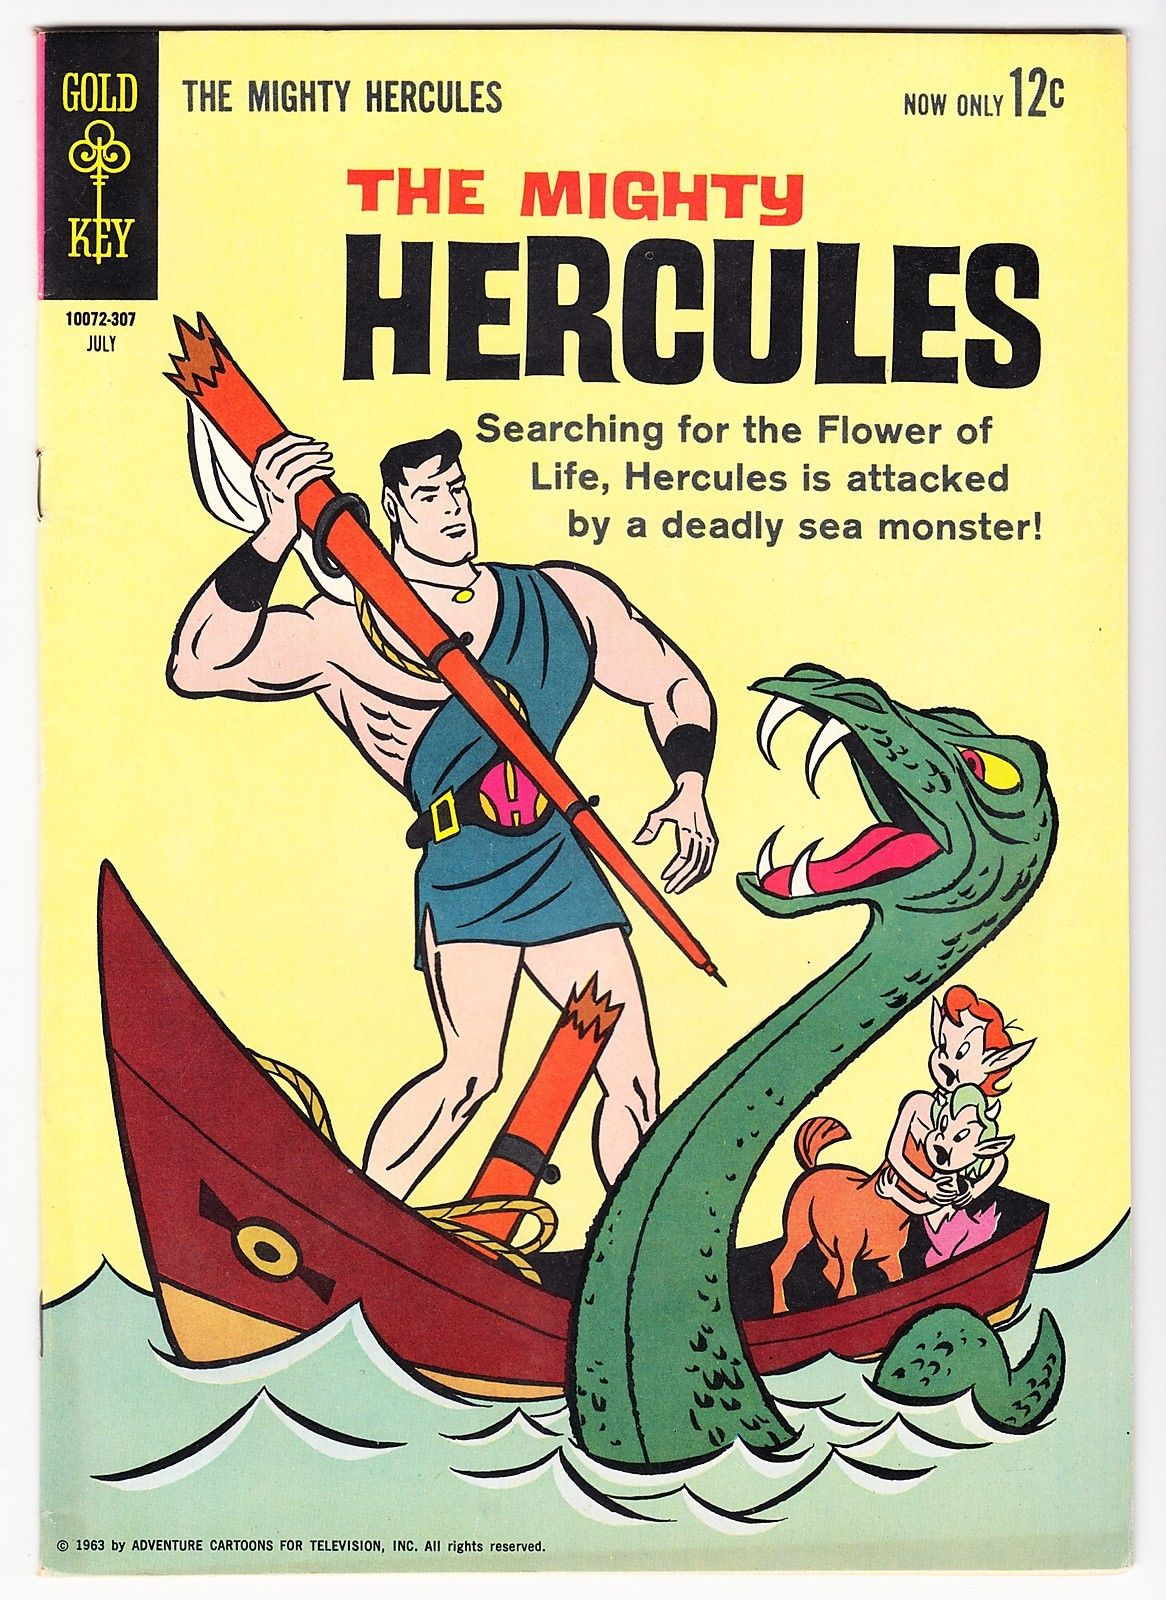 O PODEROSO HÉRCULES (THE MIGHTY HERCULES)